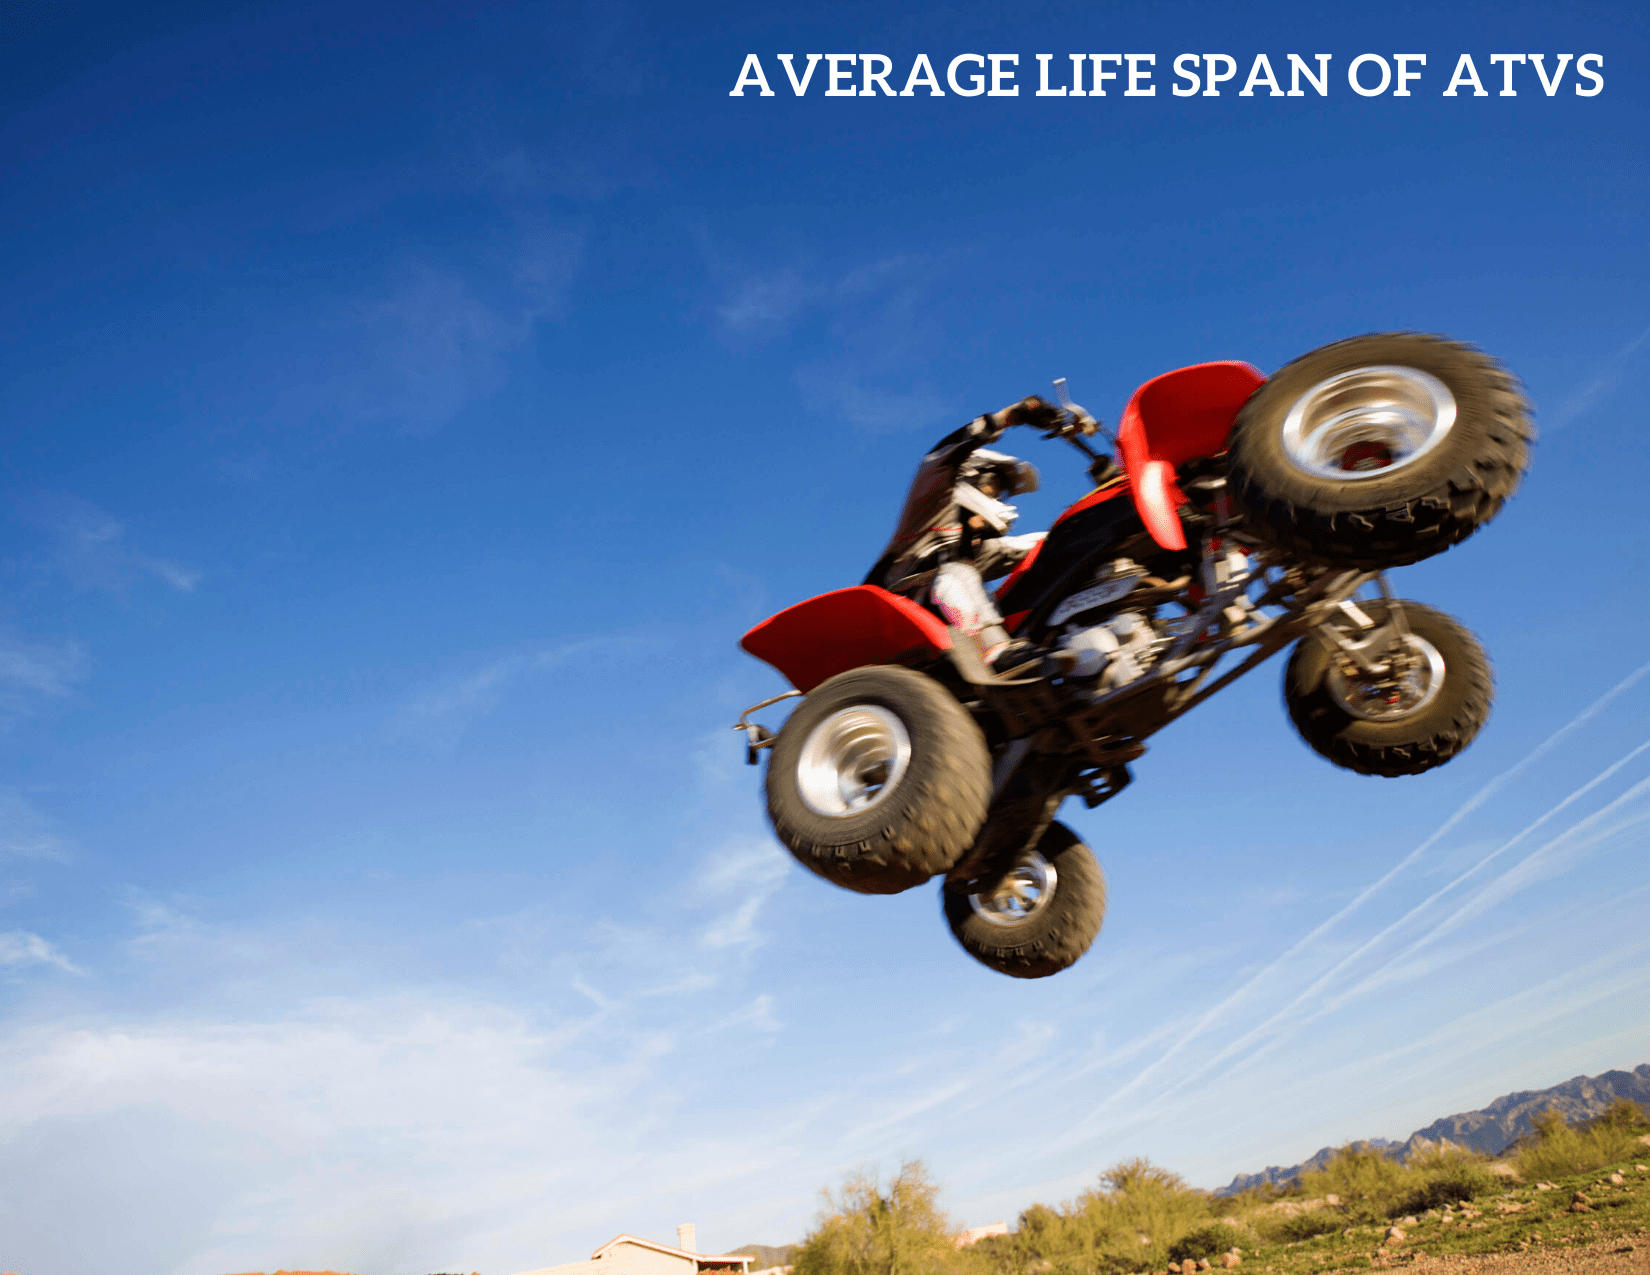 What is the average life span of ATV